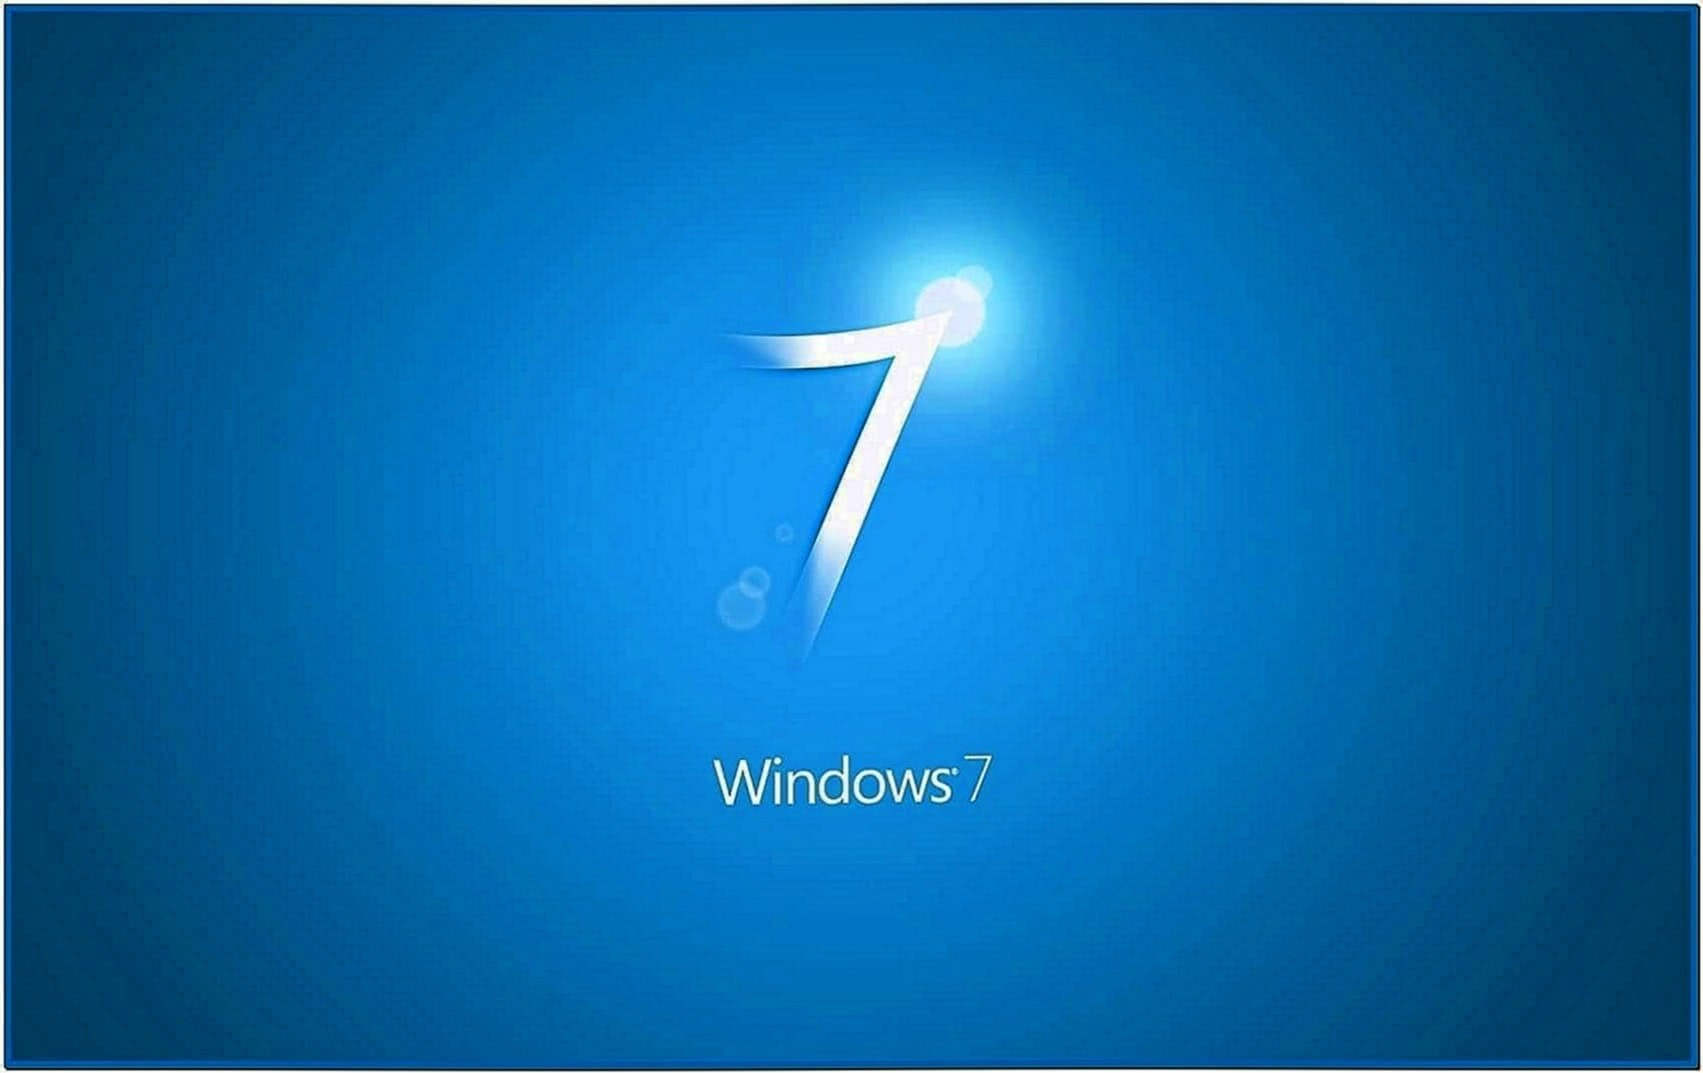 Screensaver Wallpaper Windows 7